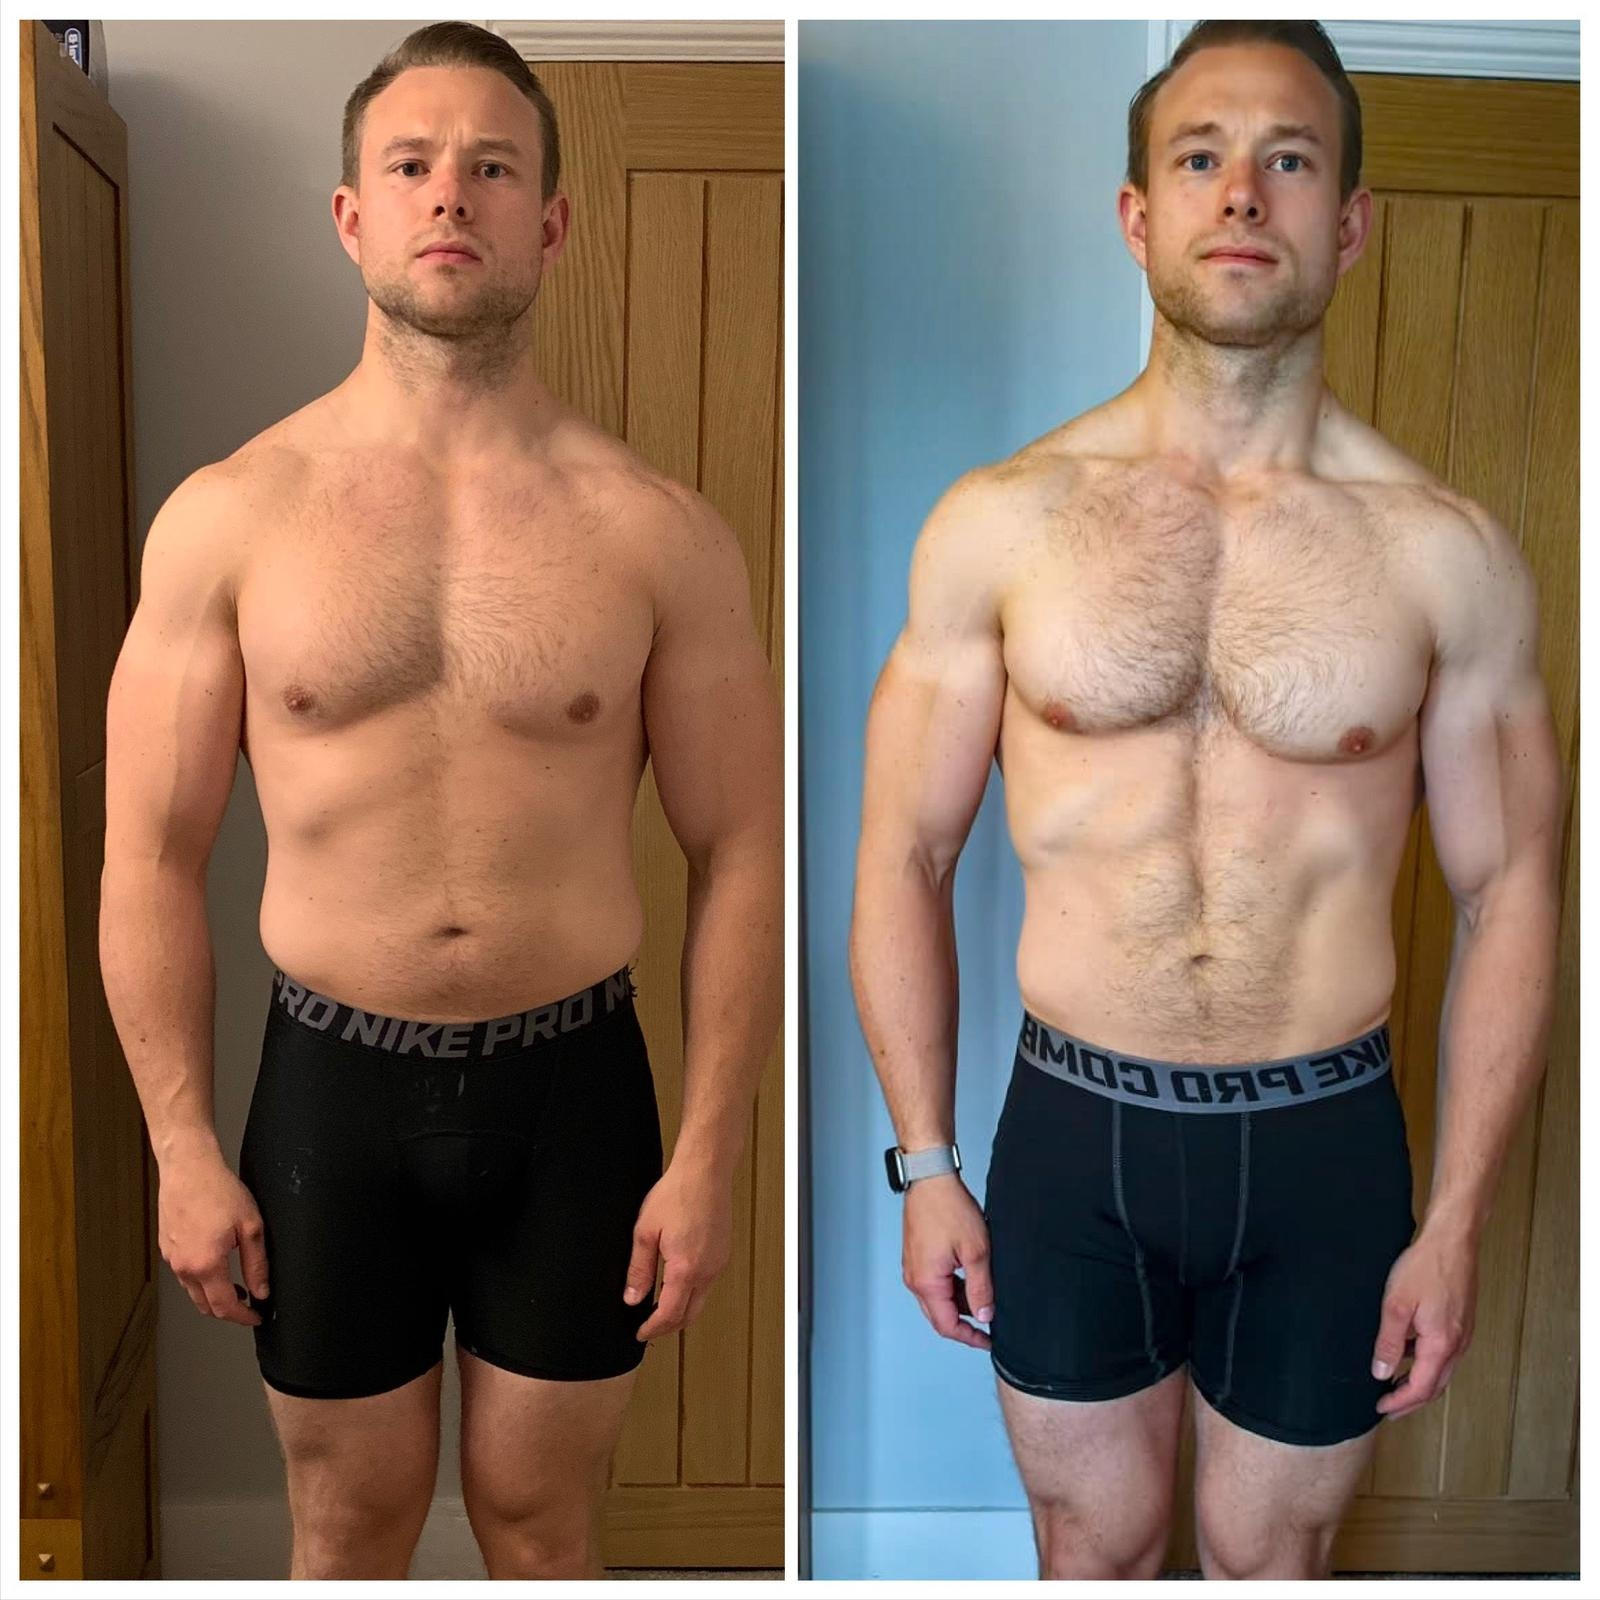 Chris Stanley - Week 1 to week 8!